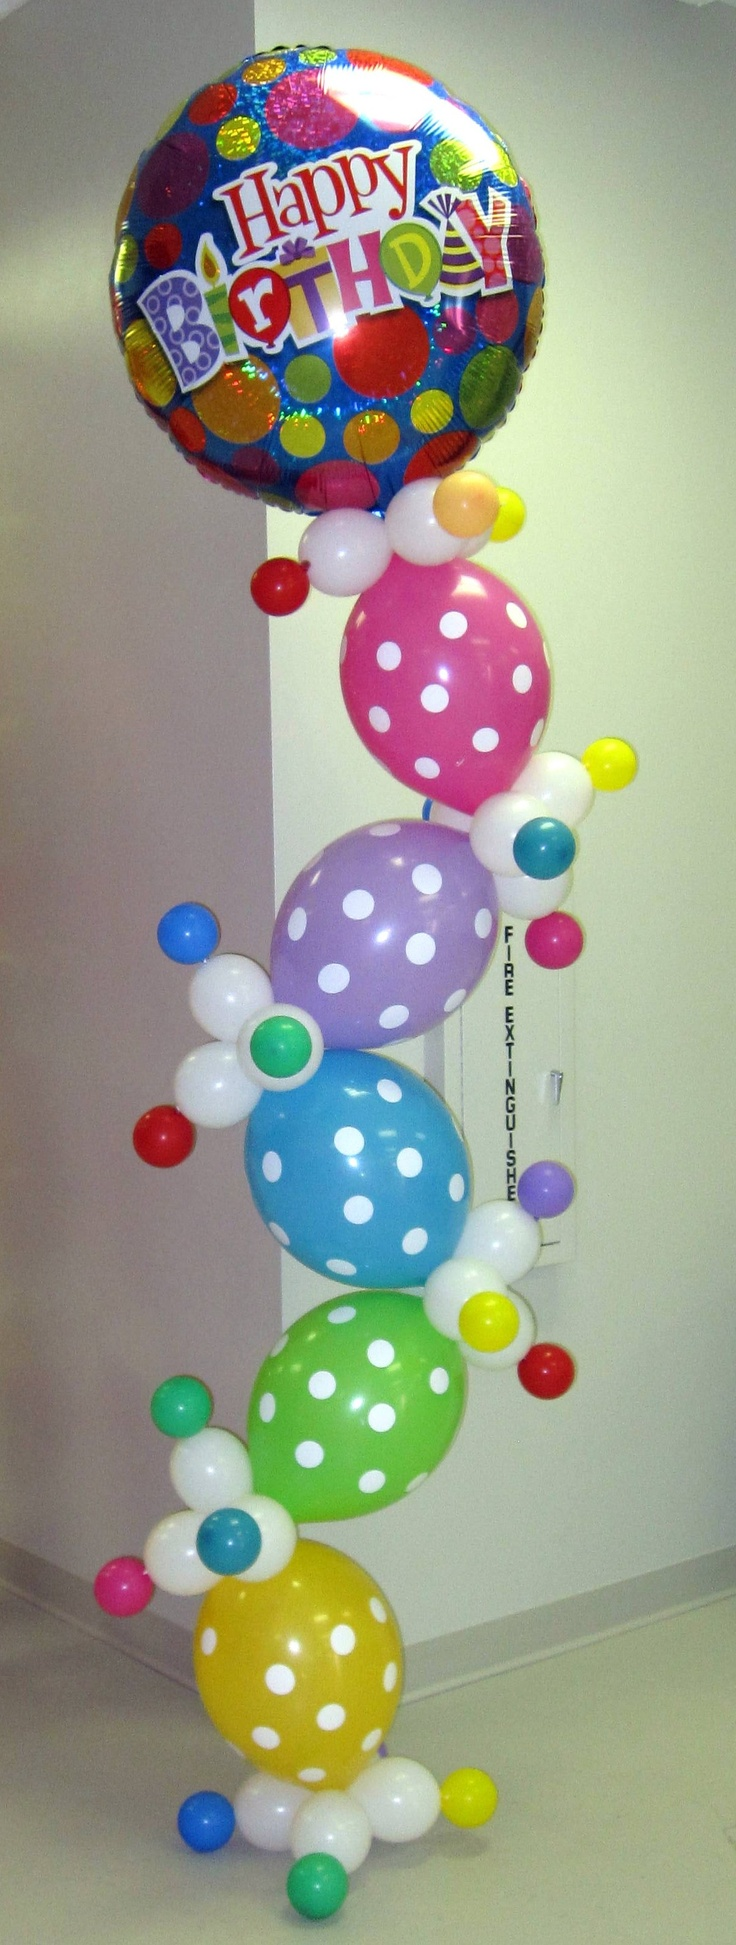 100 plus balloon pins on CaBeatrice's Balloon Board; Happy Birthday Balloons in column - LINK-O-LOON